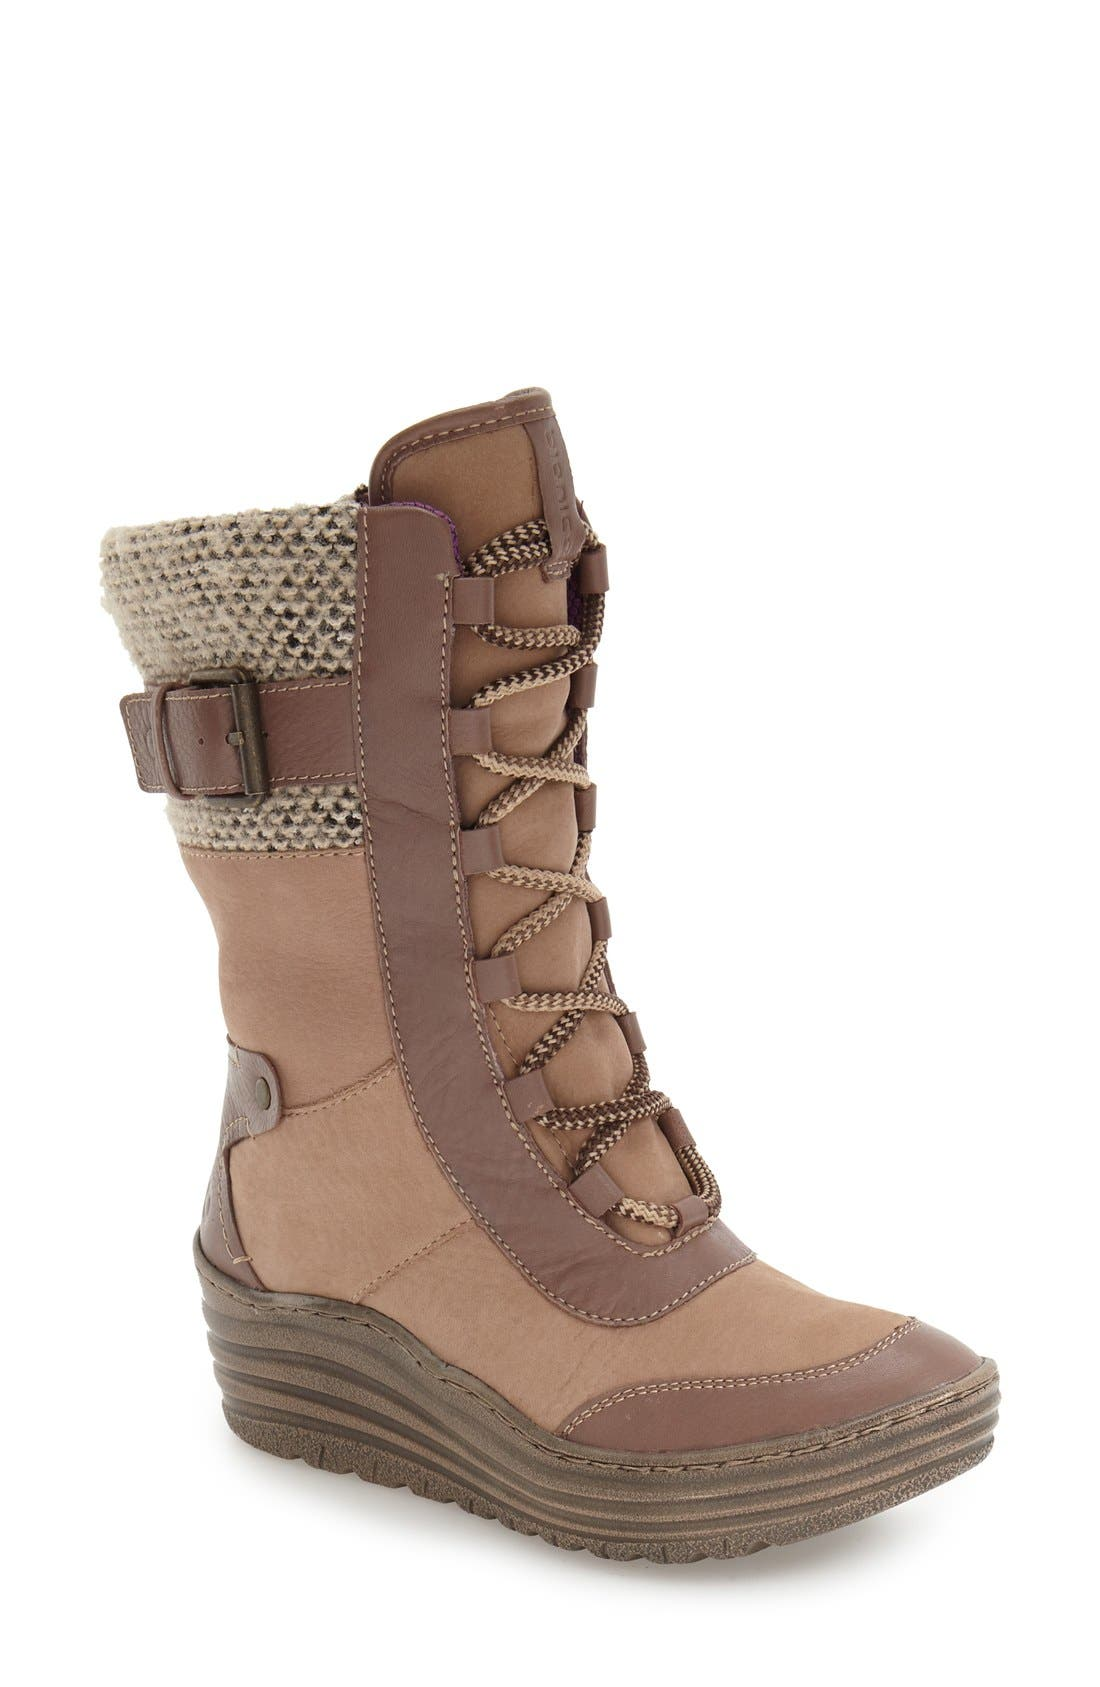 bionica Garland Waterproof Wedge Boot (Women)